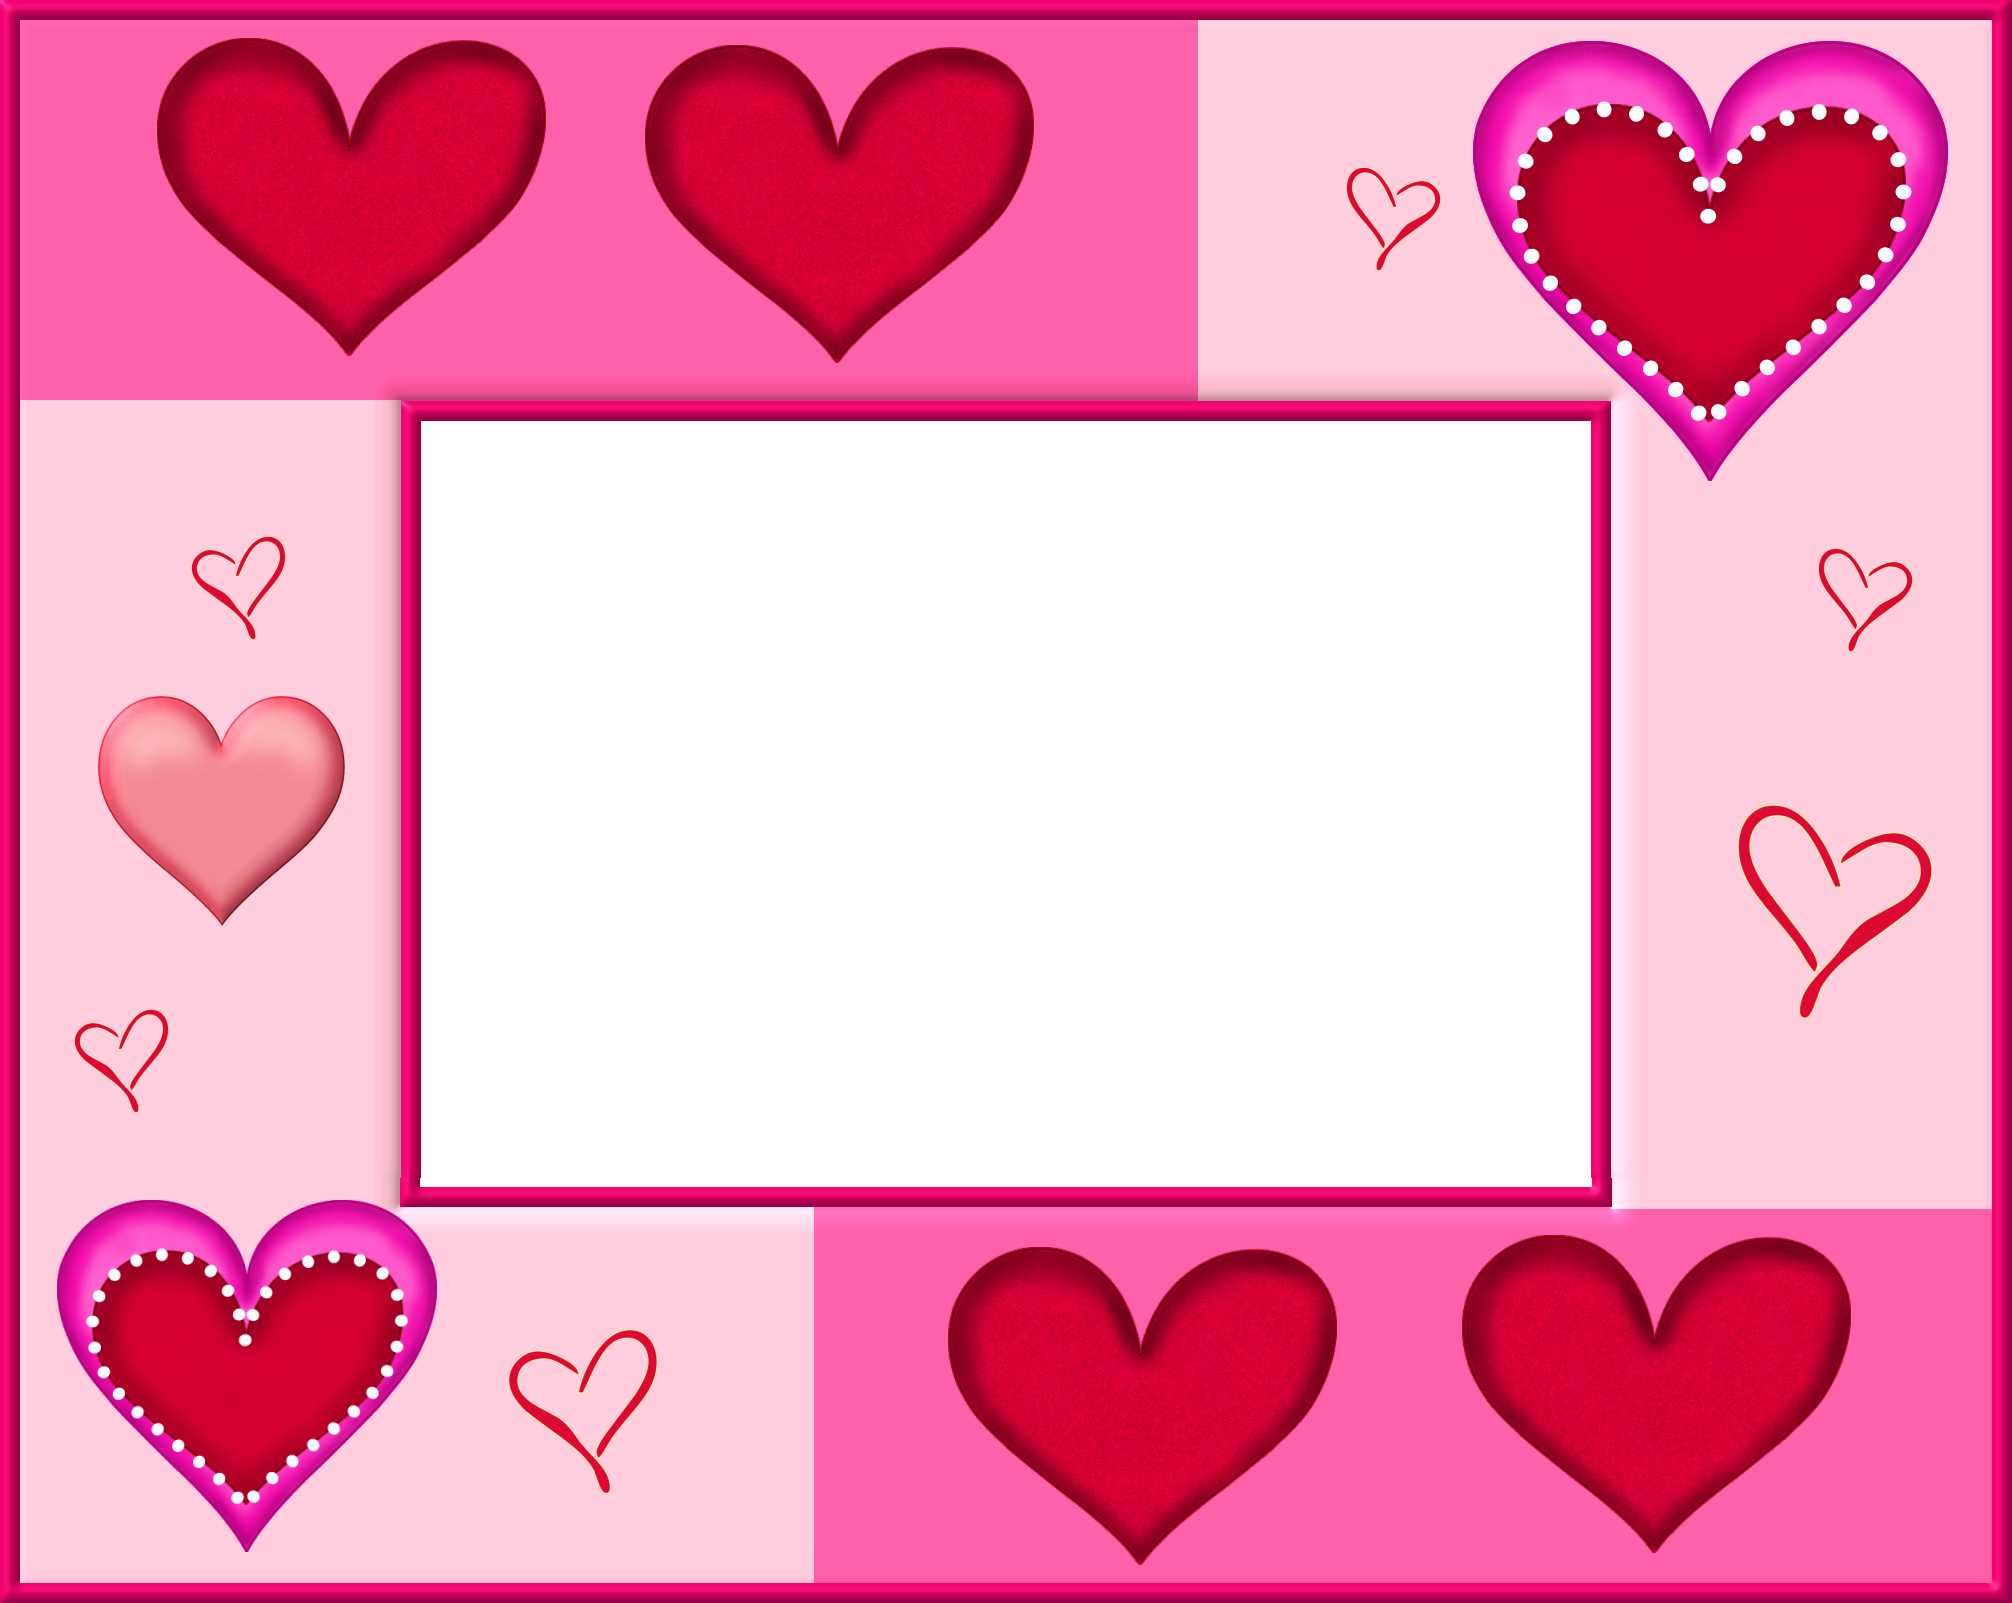 Pin By I T On Borders Frames Heart Valentines Day Border Free Valentine Clip Art Clip Art Freebies